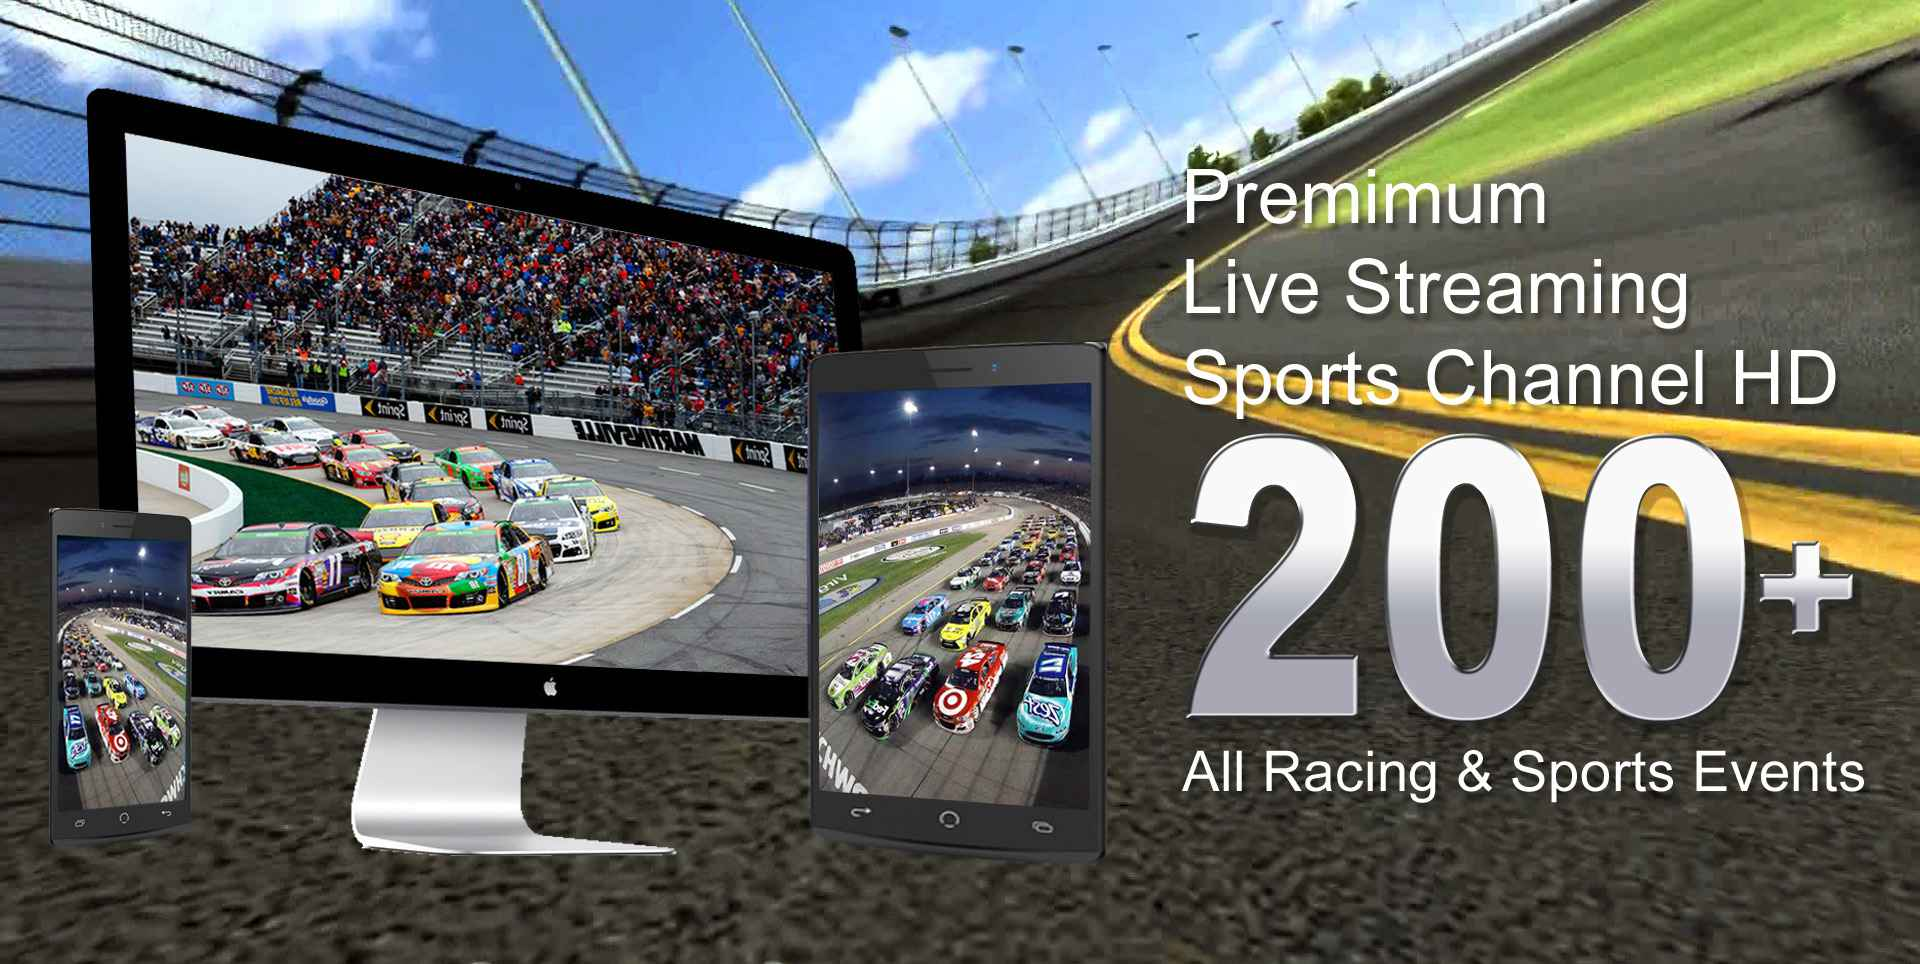 Nascar Subway Firecracker 250 Live Racing